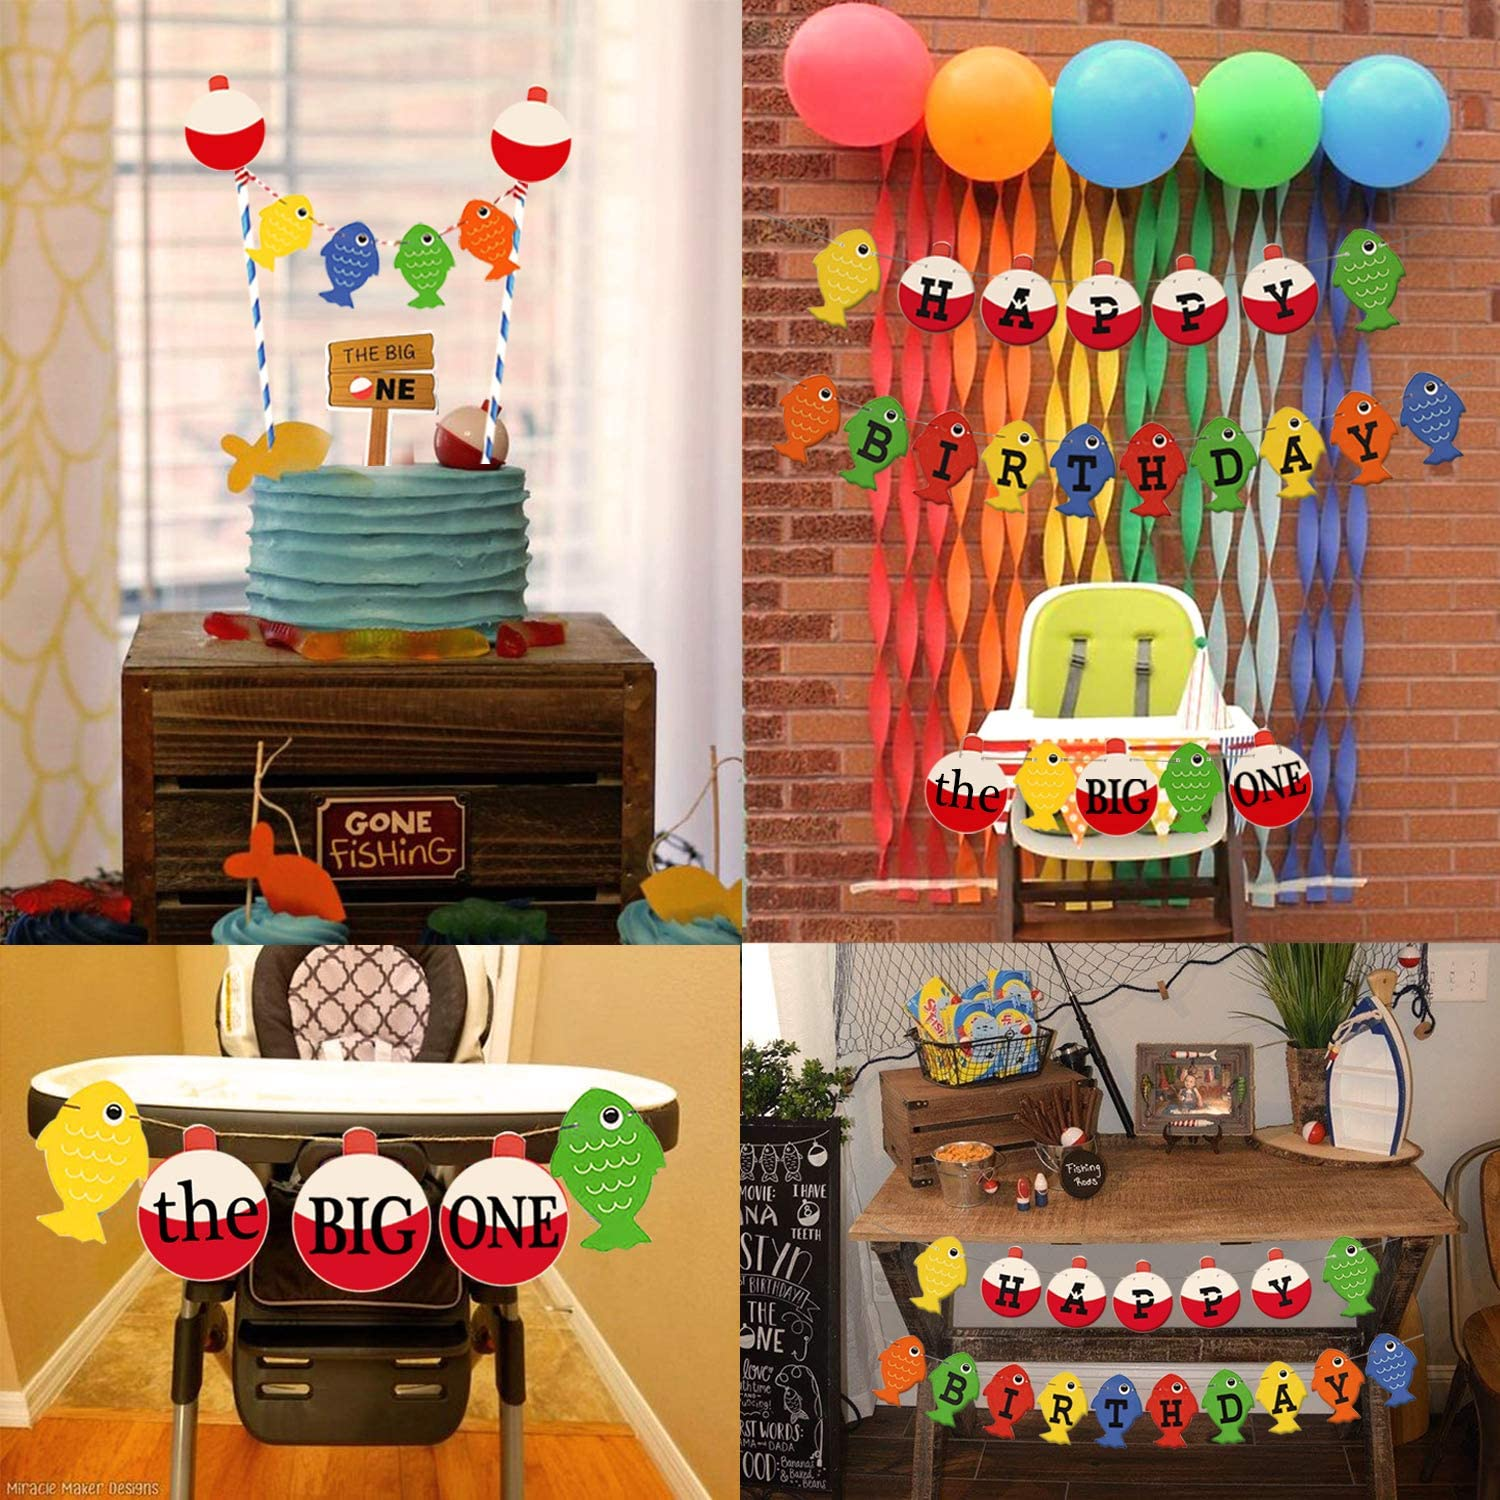 Gone Fishing Little Fisherman Party Supplies Decorations The Big One First Birthday Banner Fishing Happy Birthday Bobber Banner Hombae The Big One Birthday Theme Fishing Fishing Themed 1st Birthday.